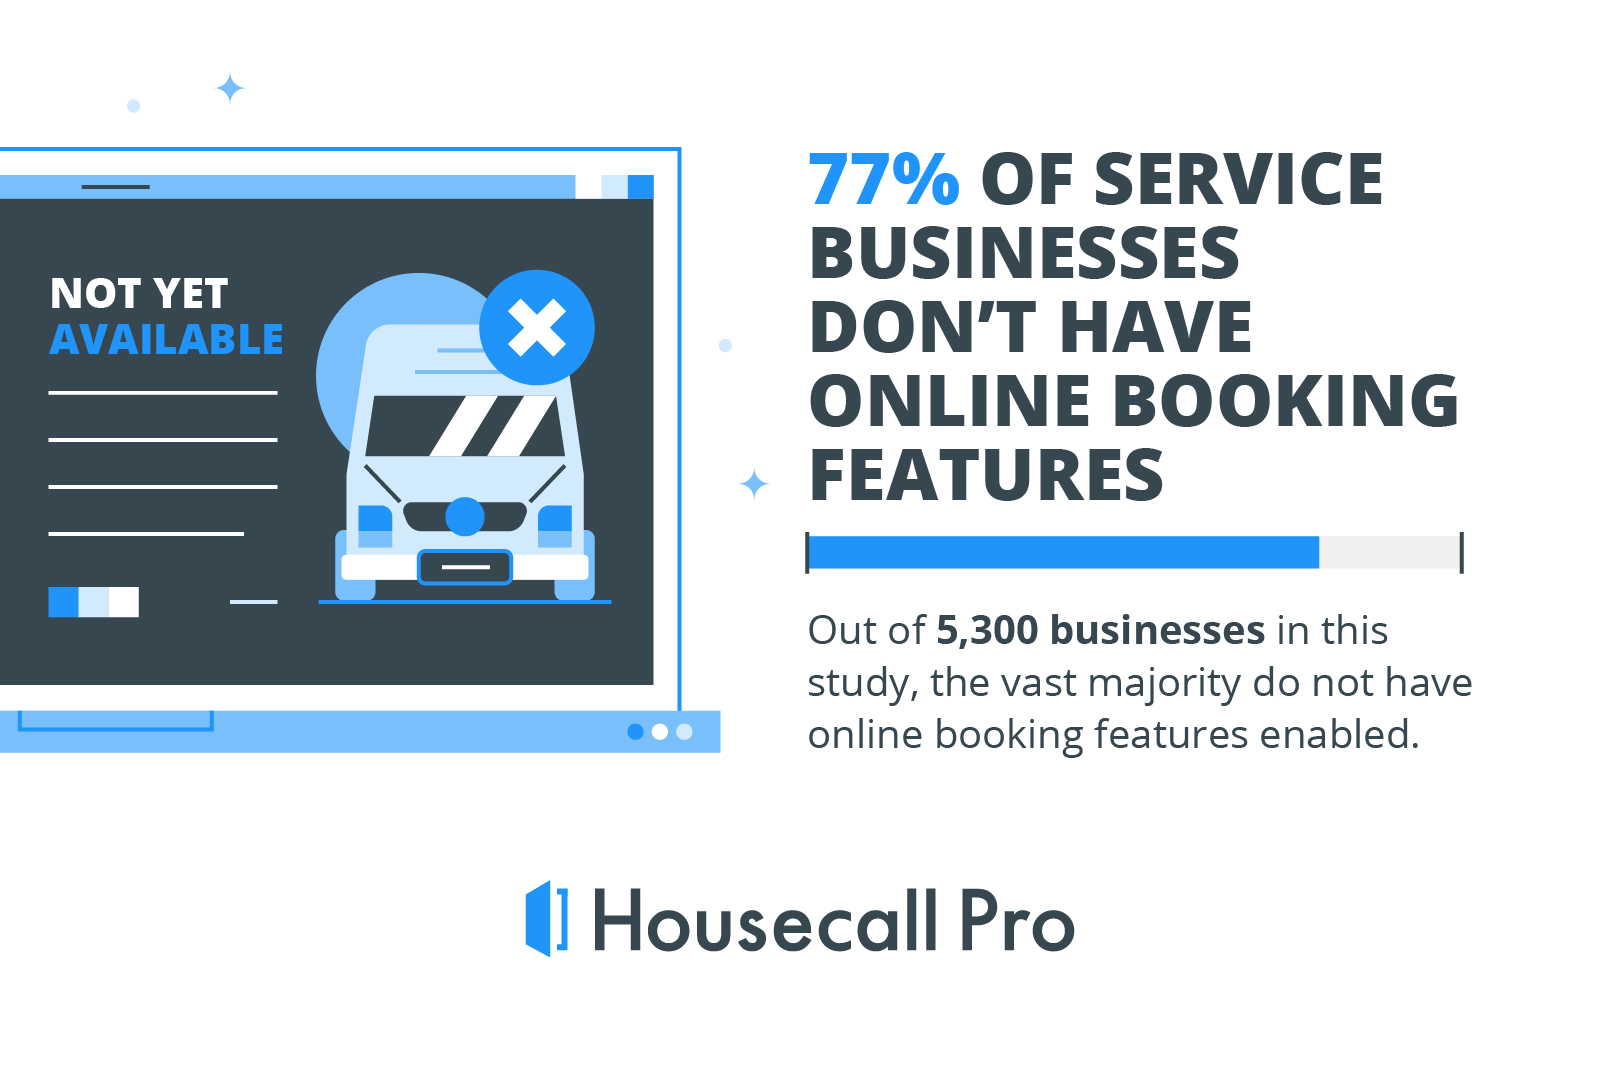 percentage of businesses that do not have online booking features enabled